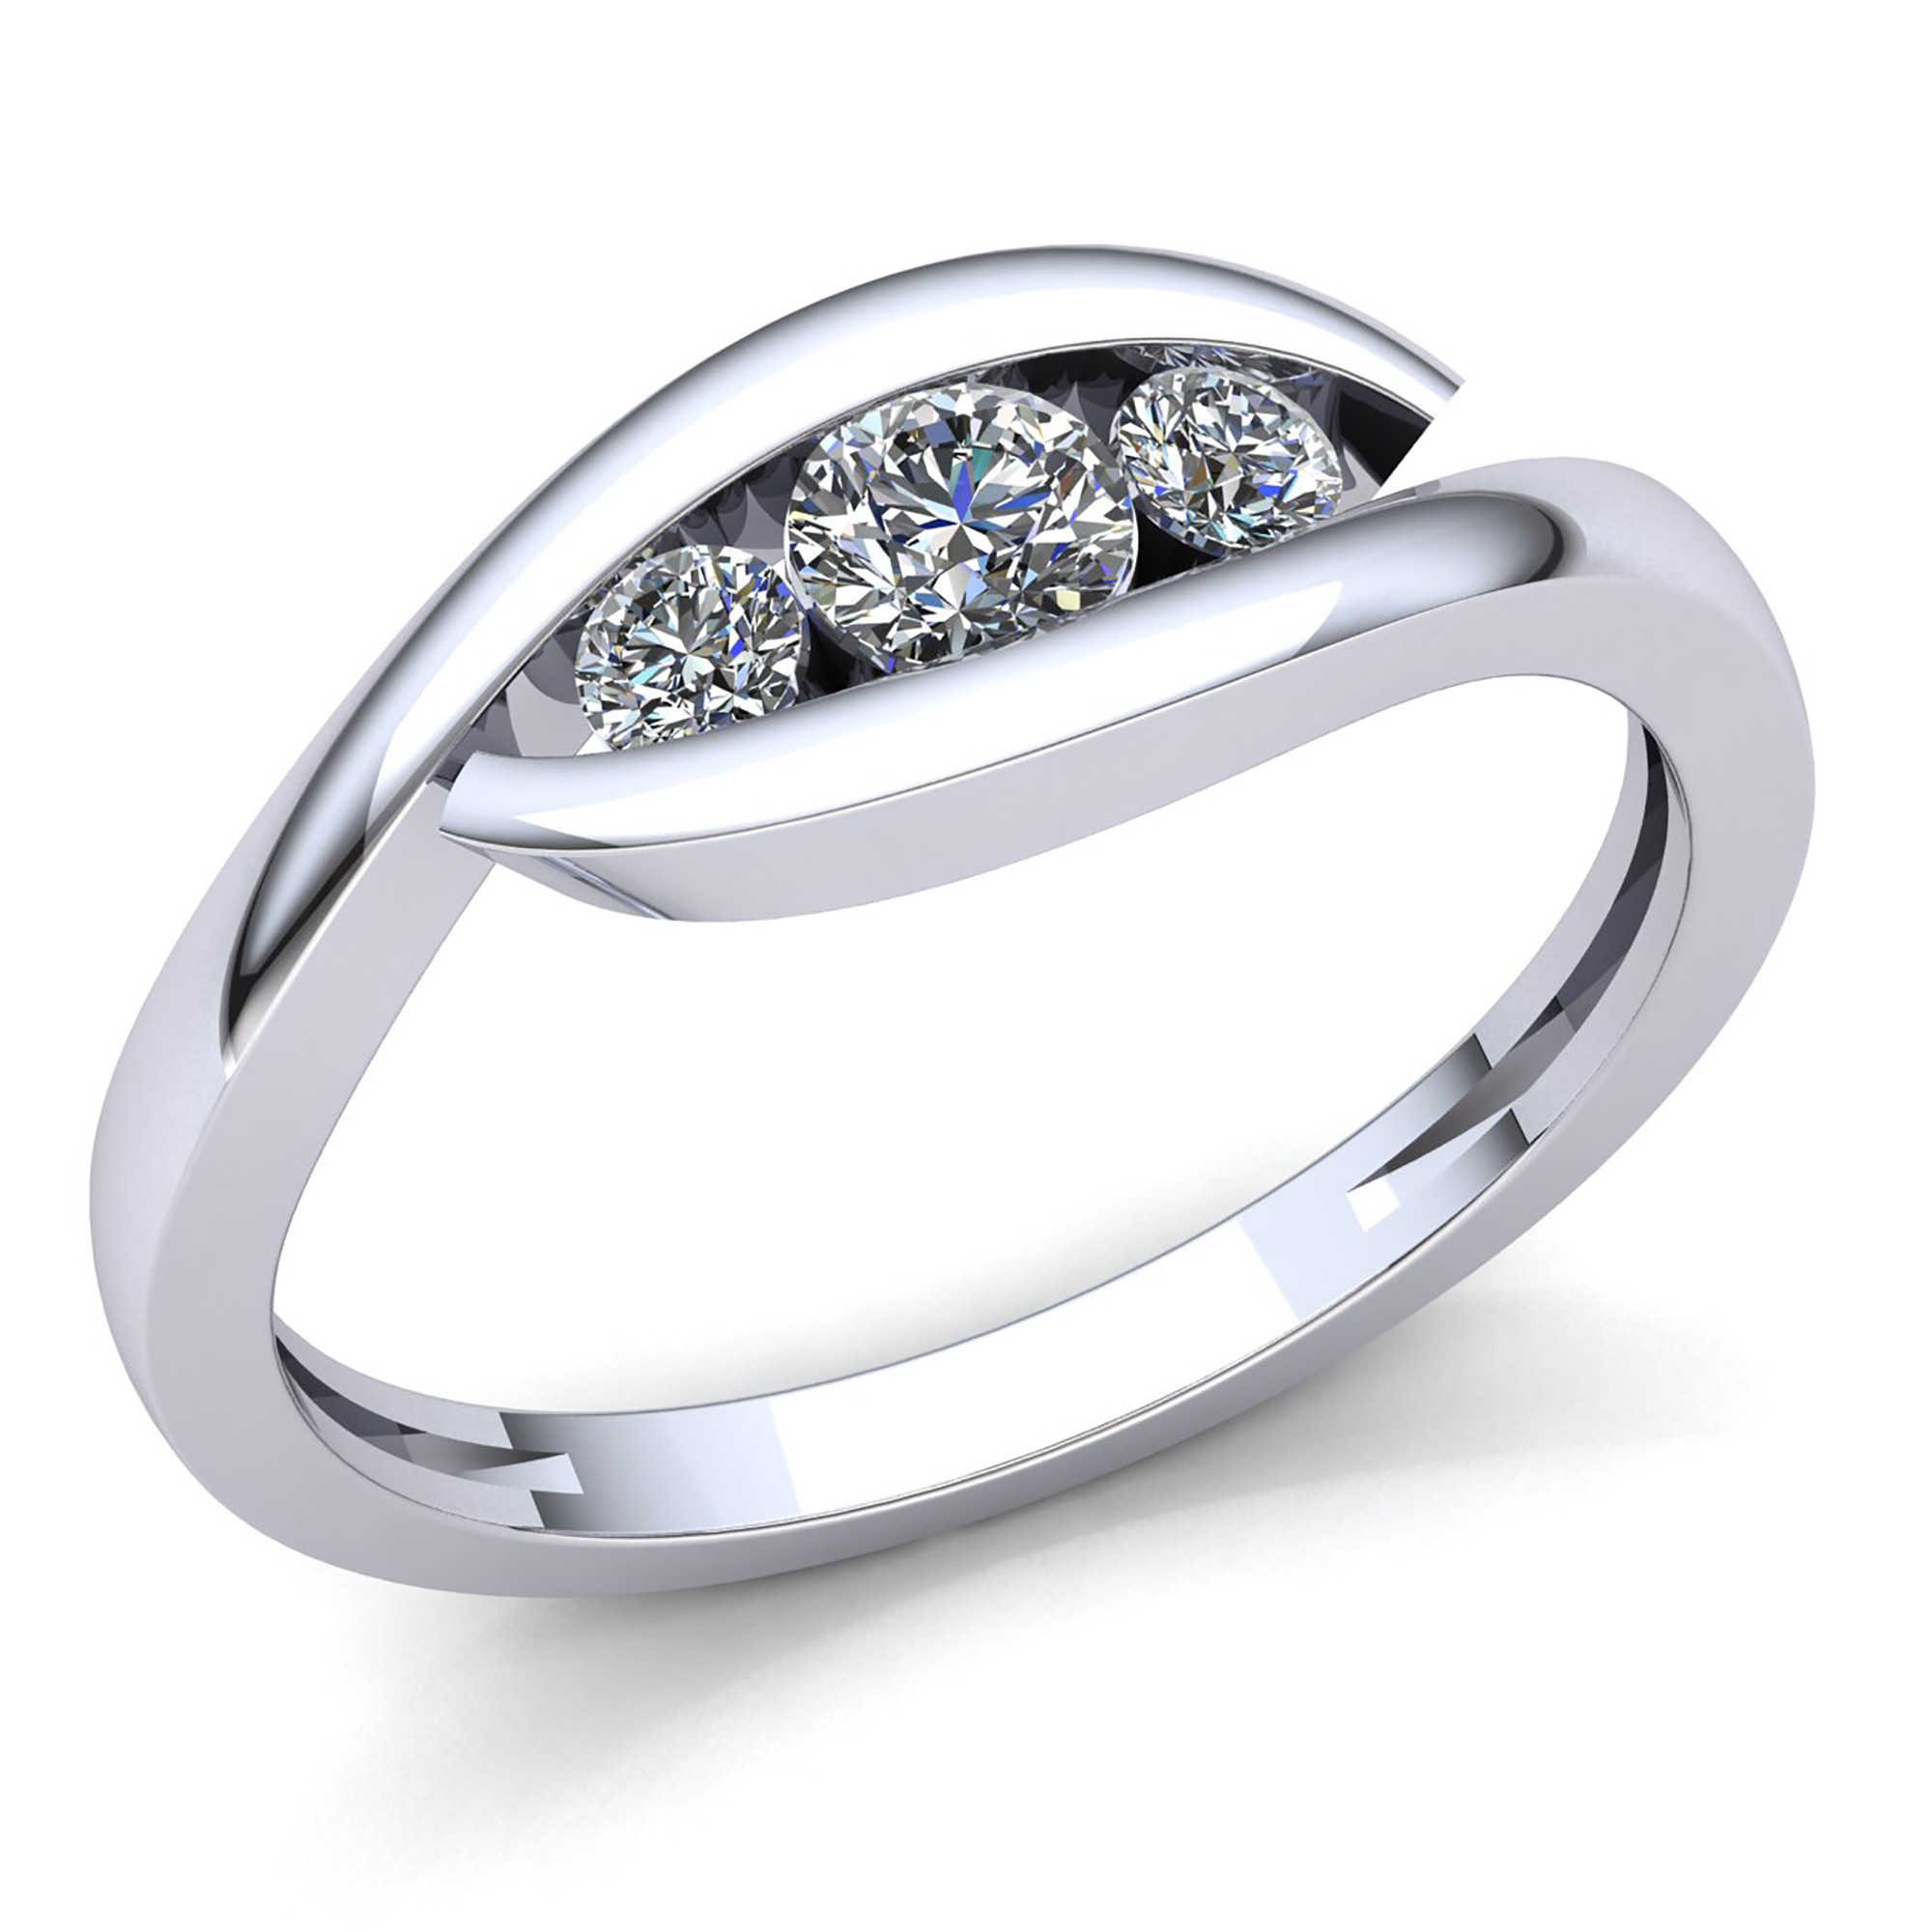 bands see engagement i ring wedding to of stone three band rings pertaining can diamond your with best collection